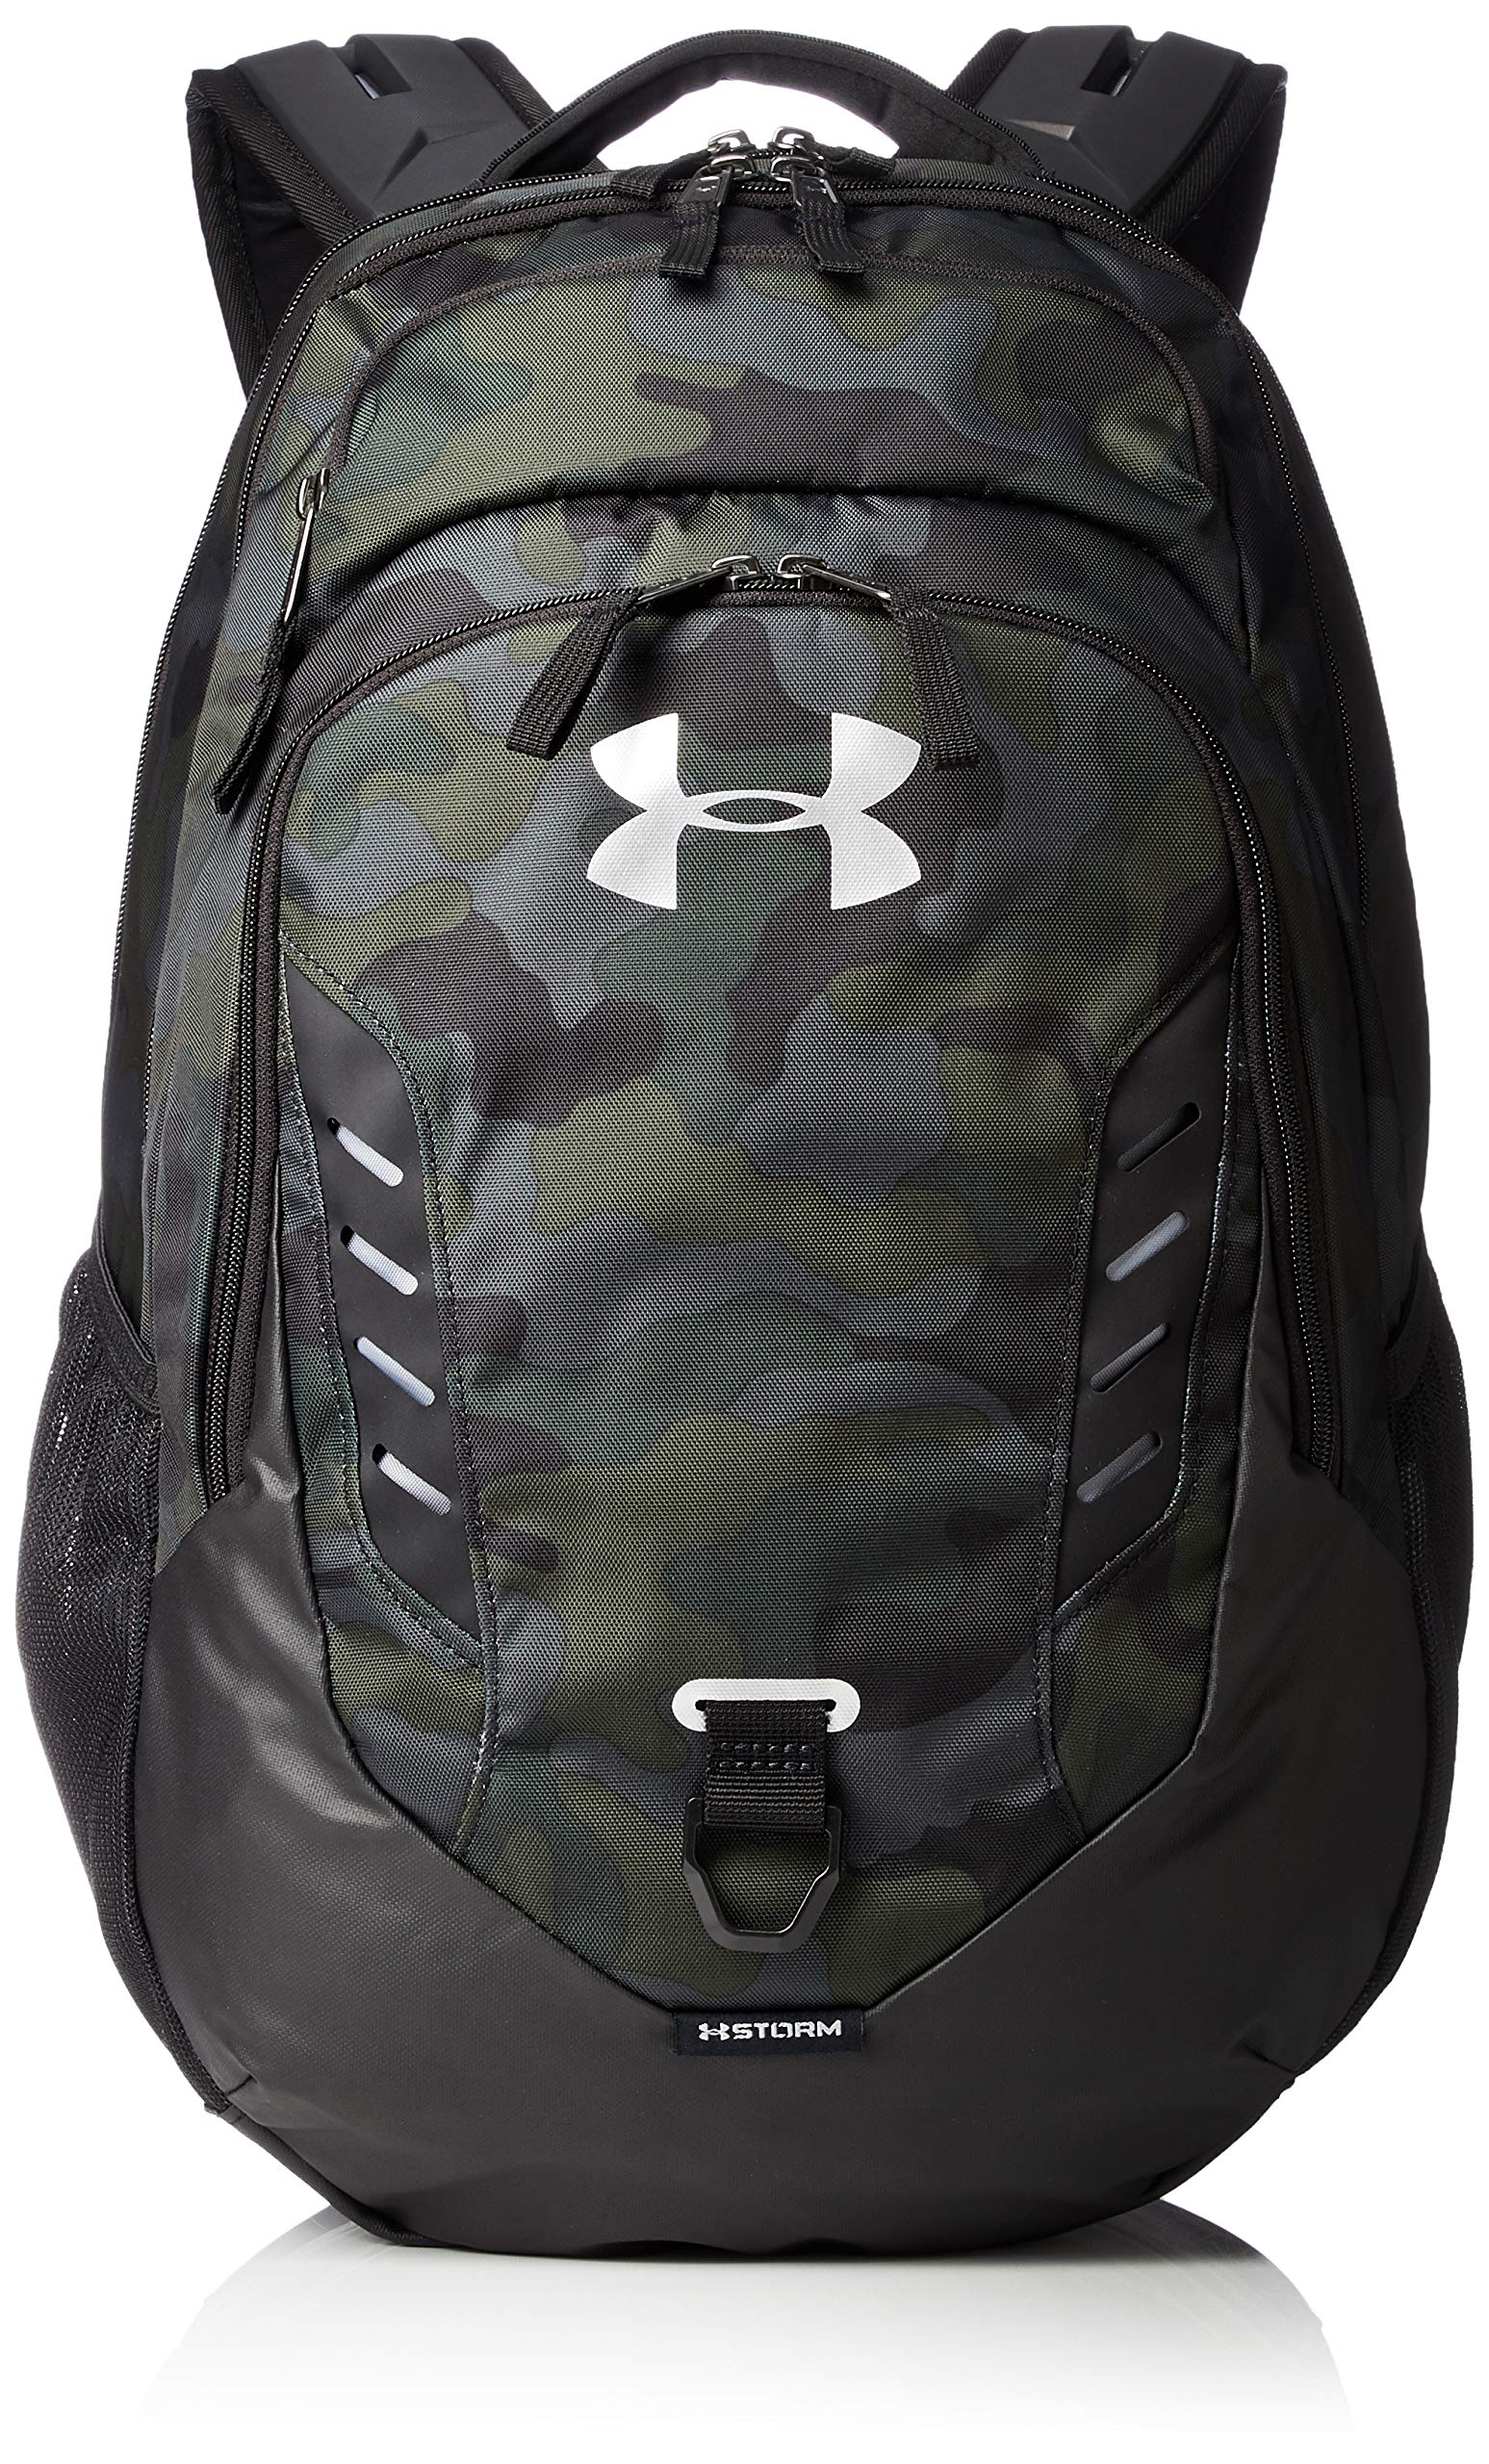 Under Armour Gameday Backpack, Desert Sand (290)/Silver, One Size